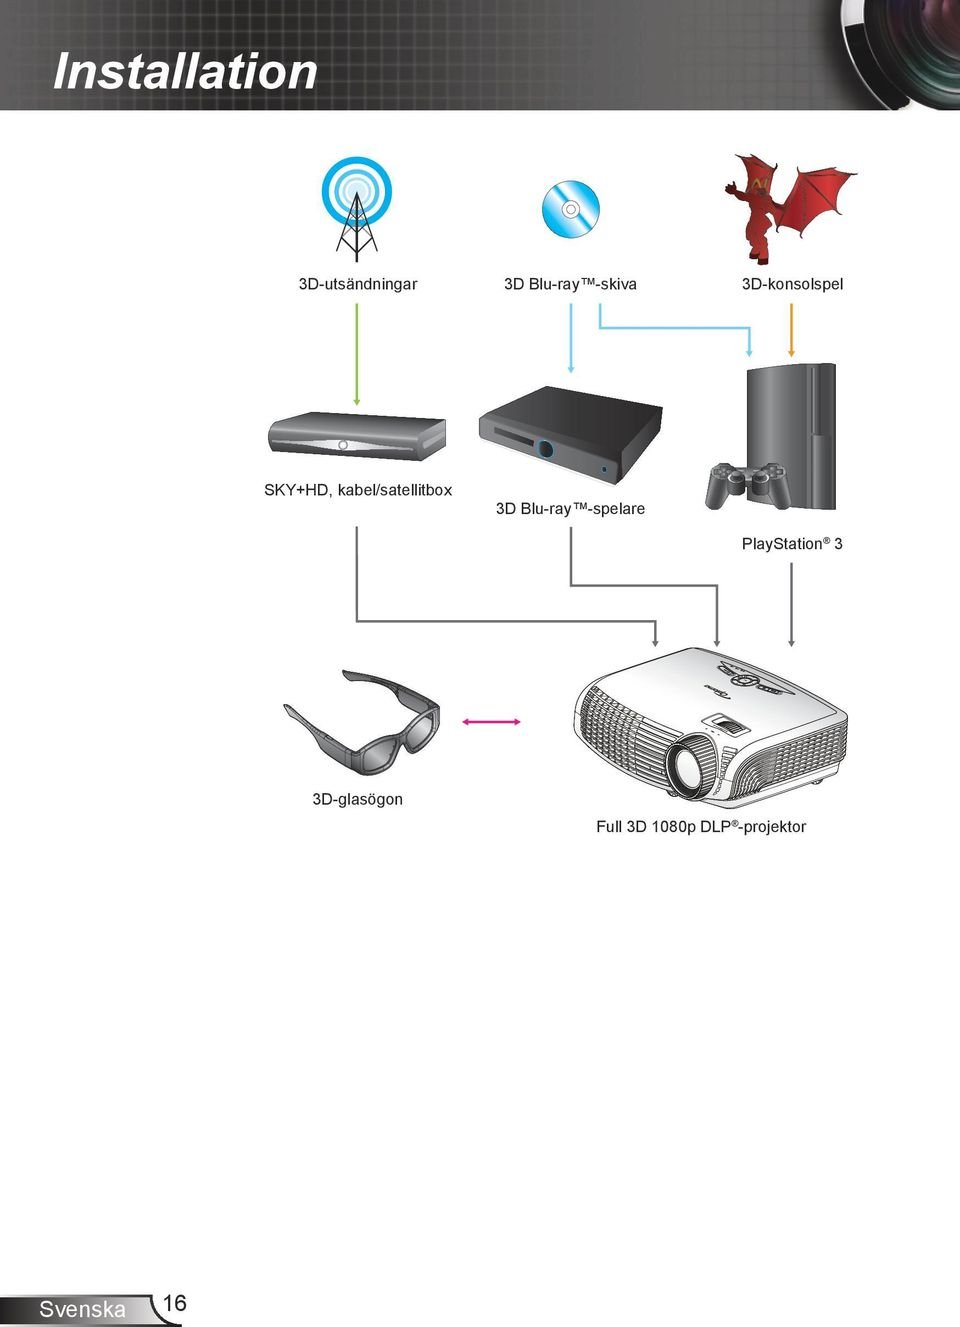 kabel/satellitbox 3D Blu-ray -spelare